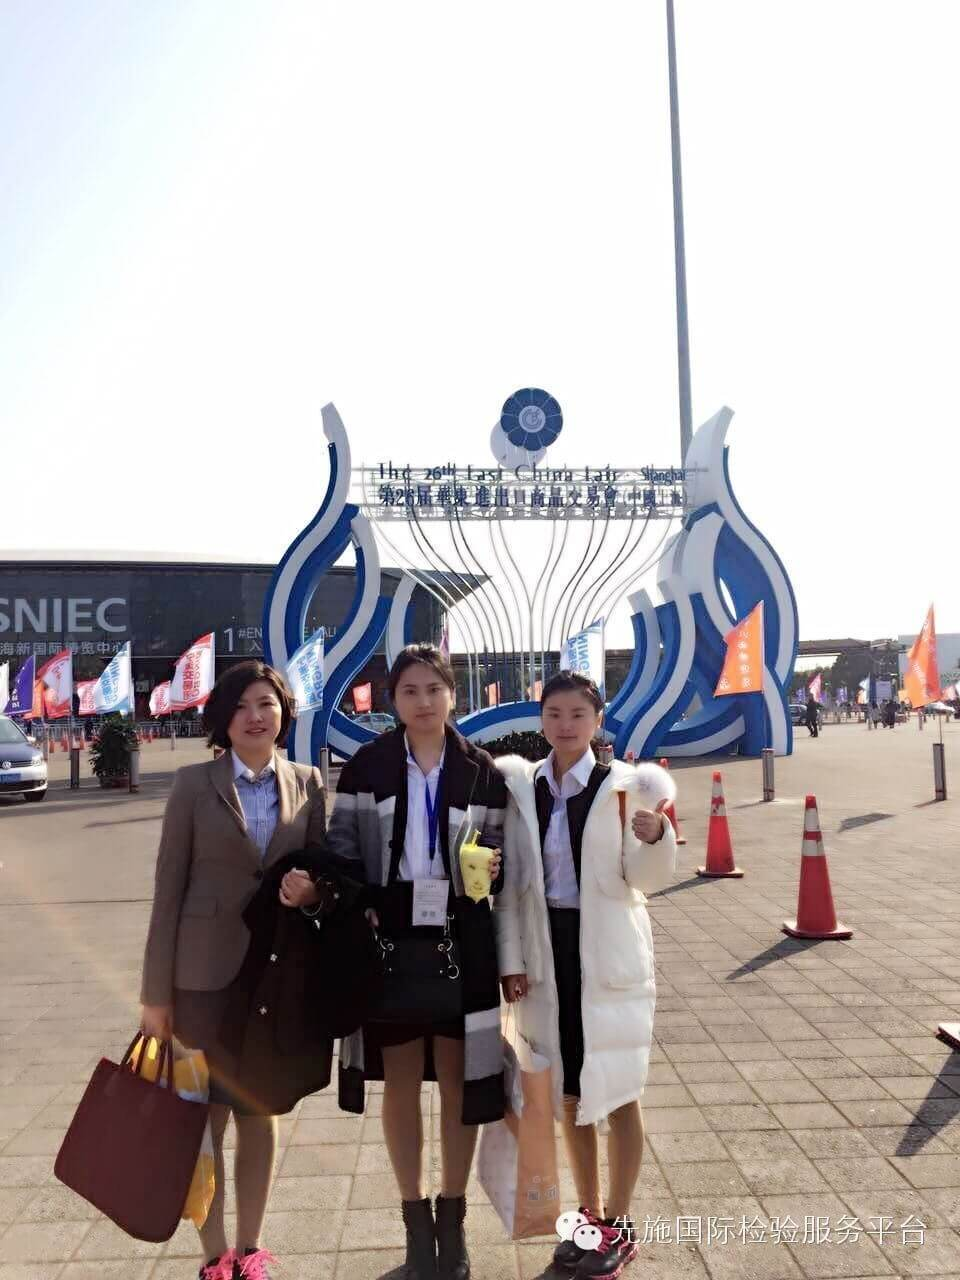 Sunchine at East China Import and Export Fair of the 26th (1)